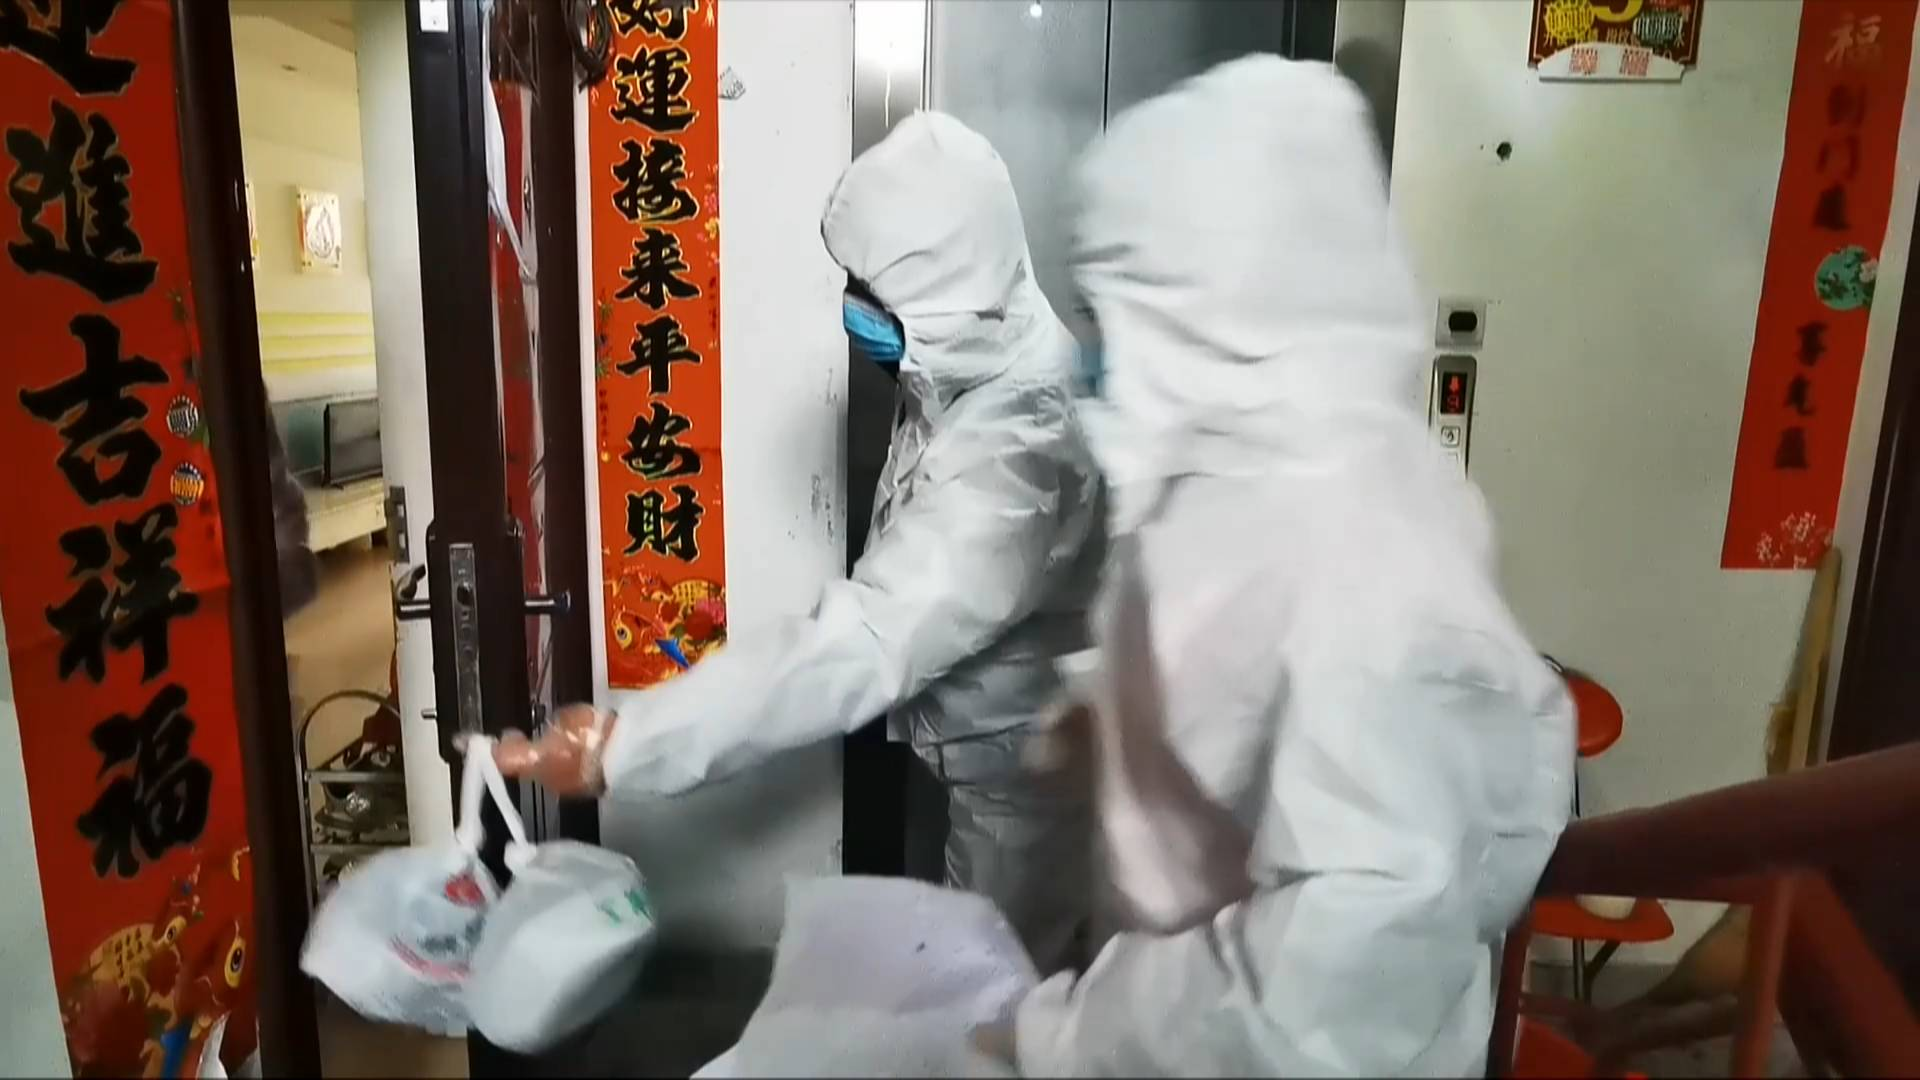 GLOBALink   Central kitchens in Lanzhou, China ensure food supply amid pandemic